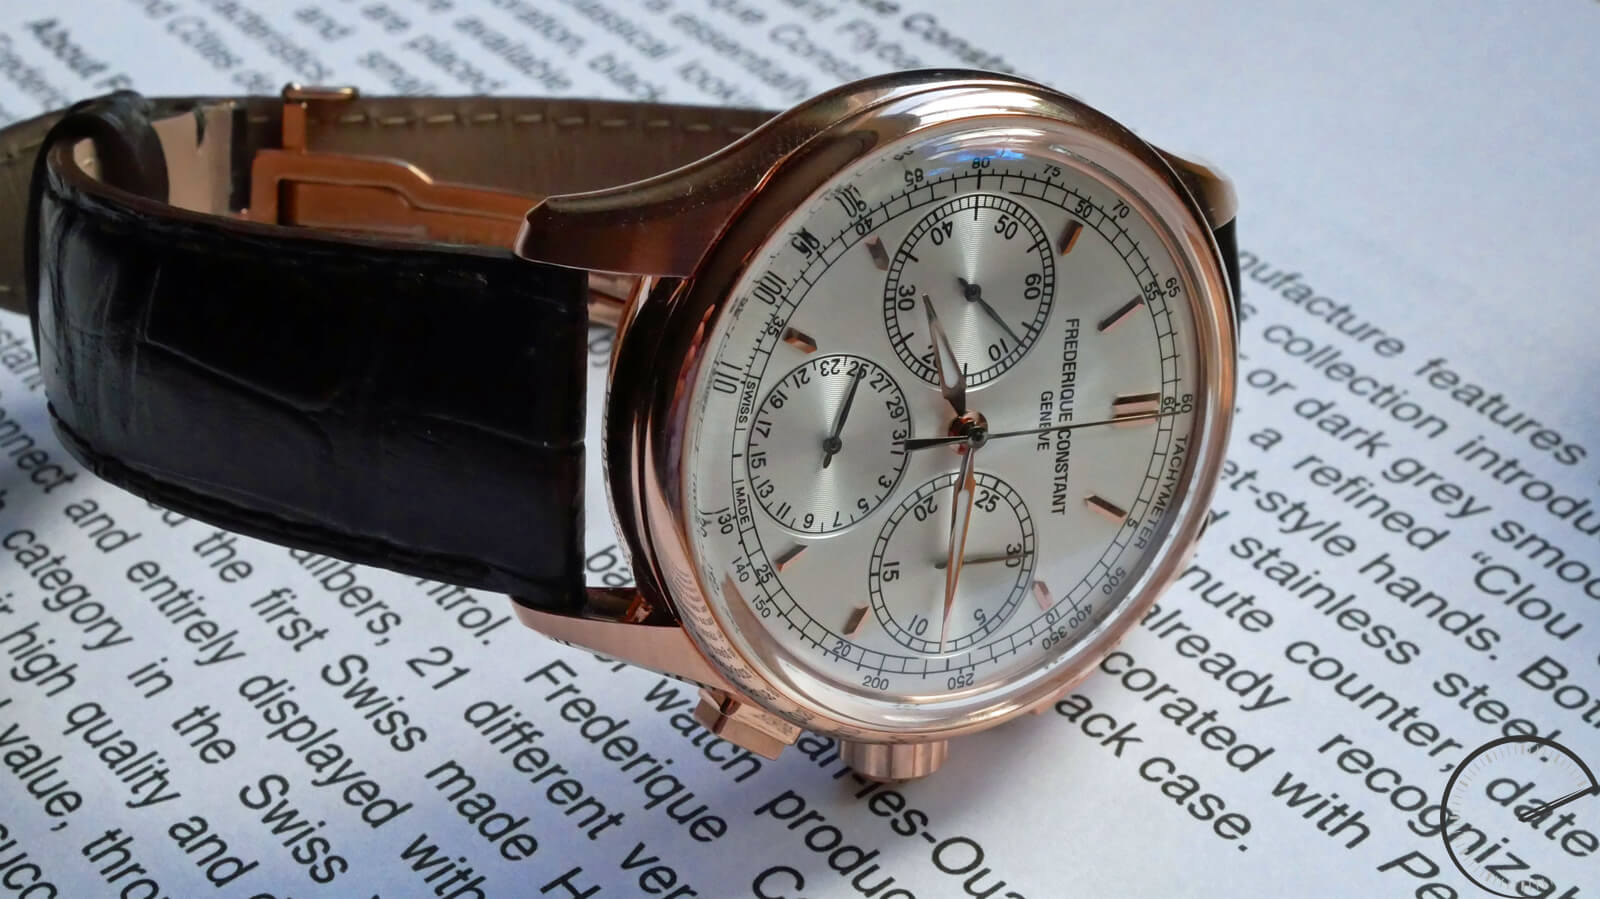 Frederique Constant Flyback Chronograph Manufacture - timepiece with flyback function, gold-plated case and tri-compax layout